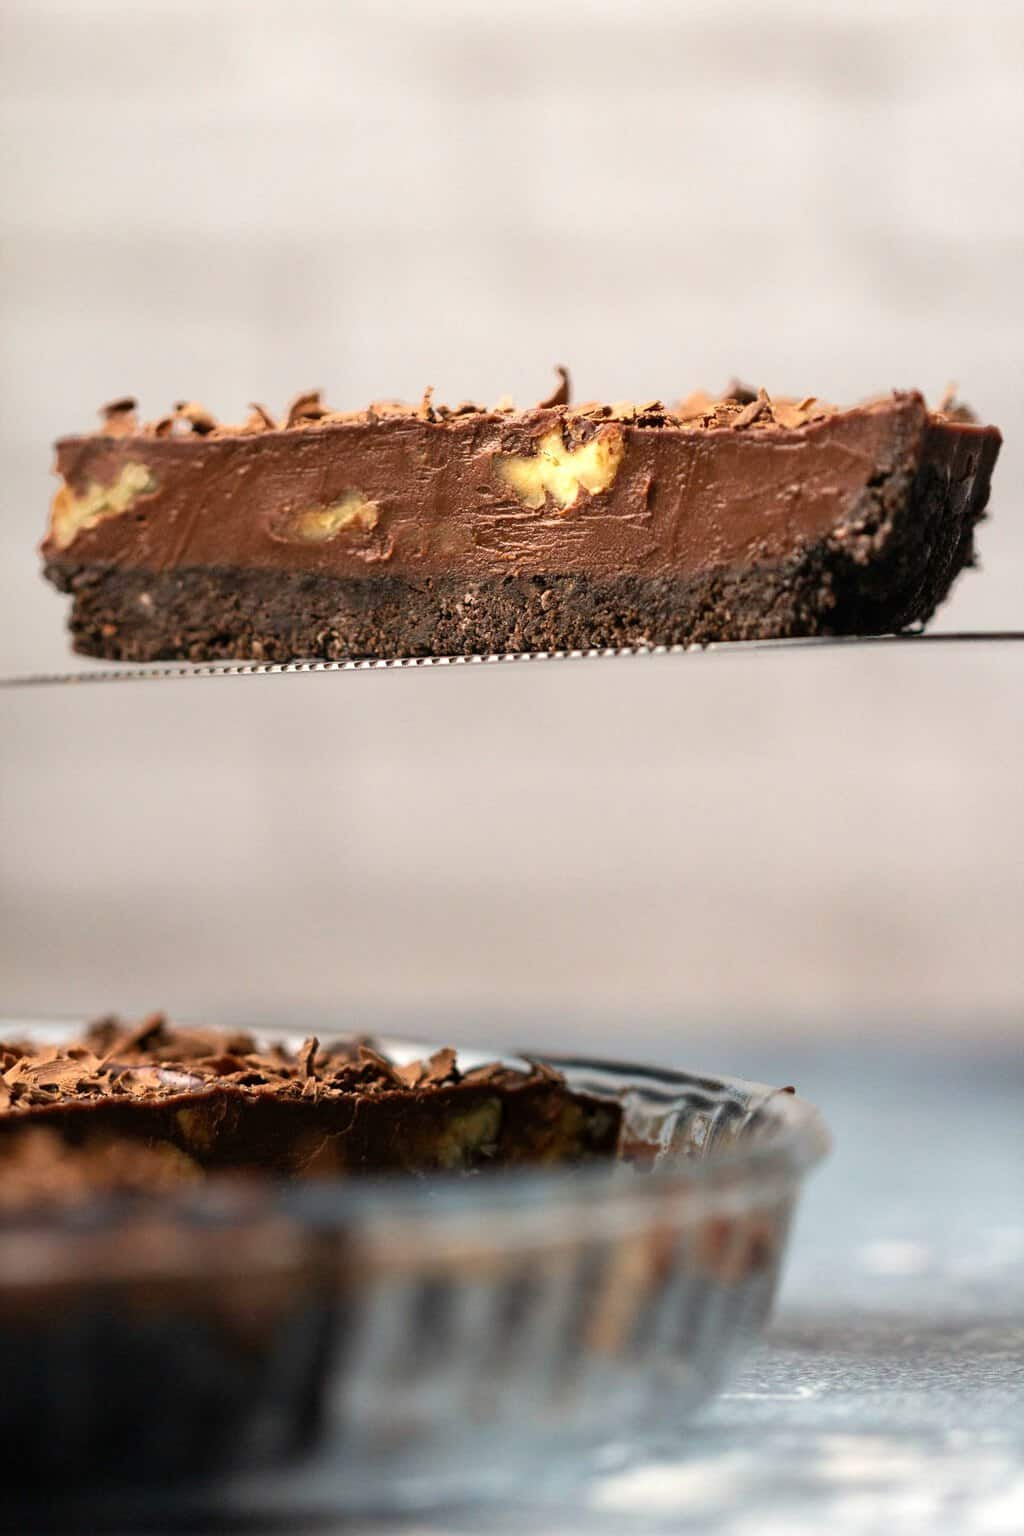 A slice of vegan chocolate tart on a cake lifter.